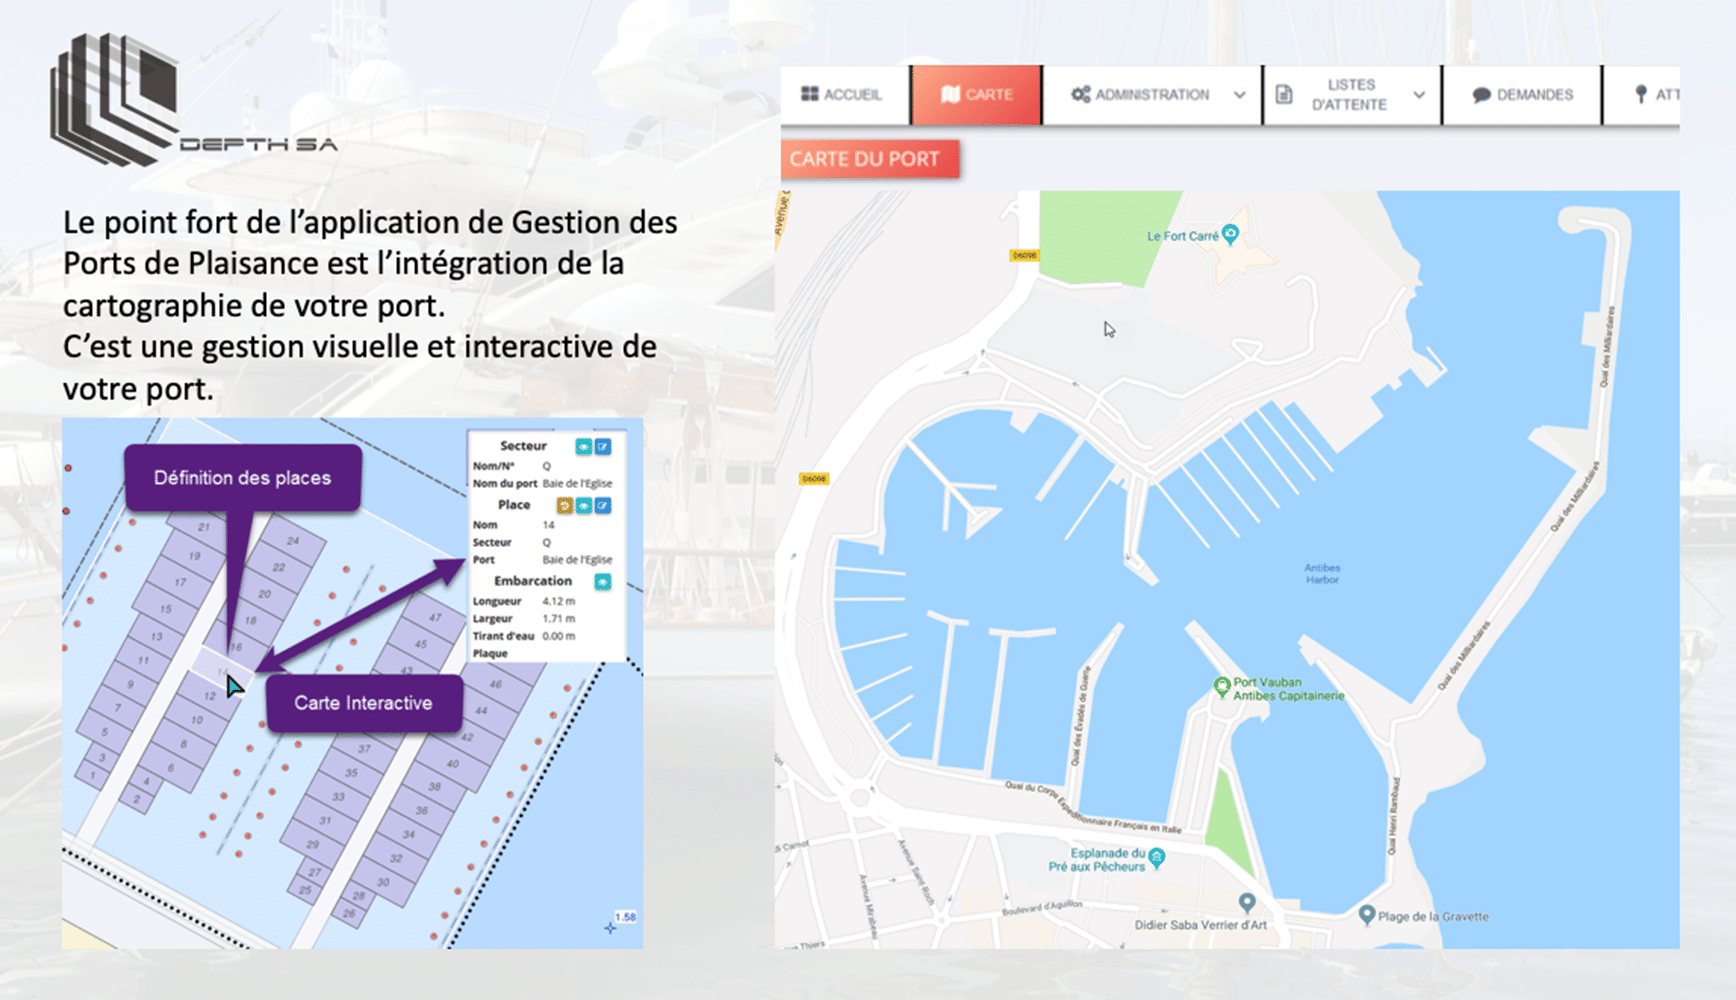 Avantage cartographie - Applications gestion des ports - DEPTH SA